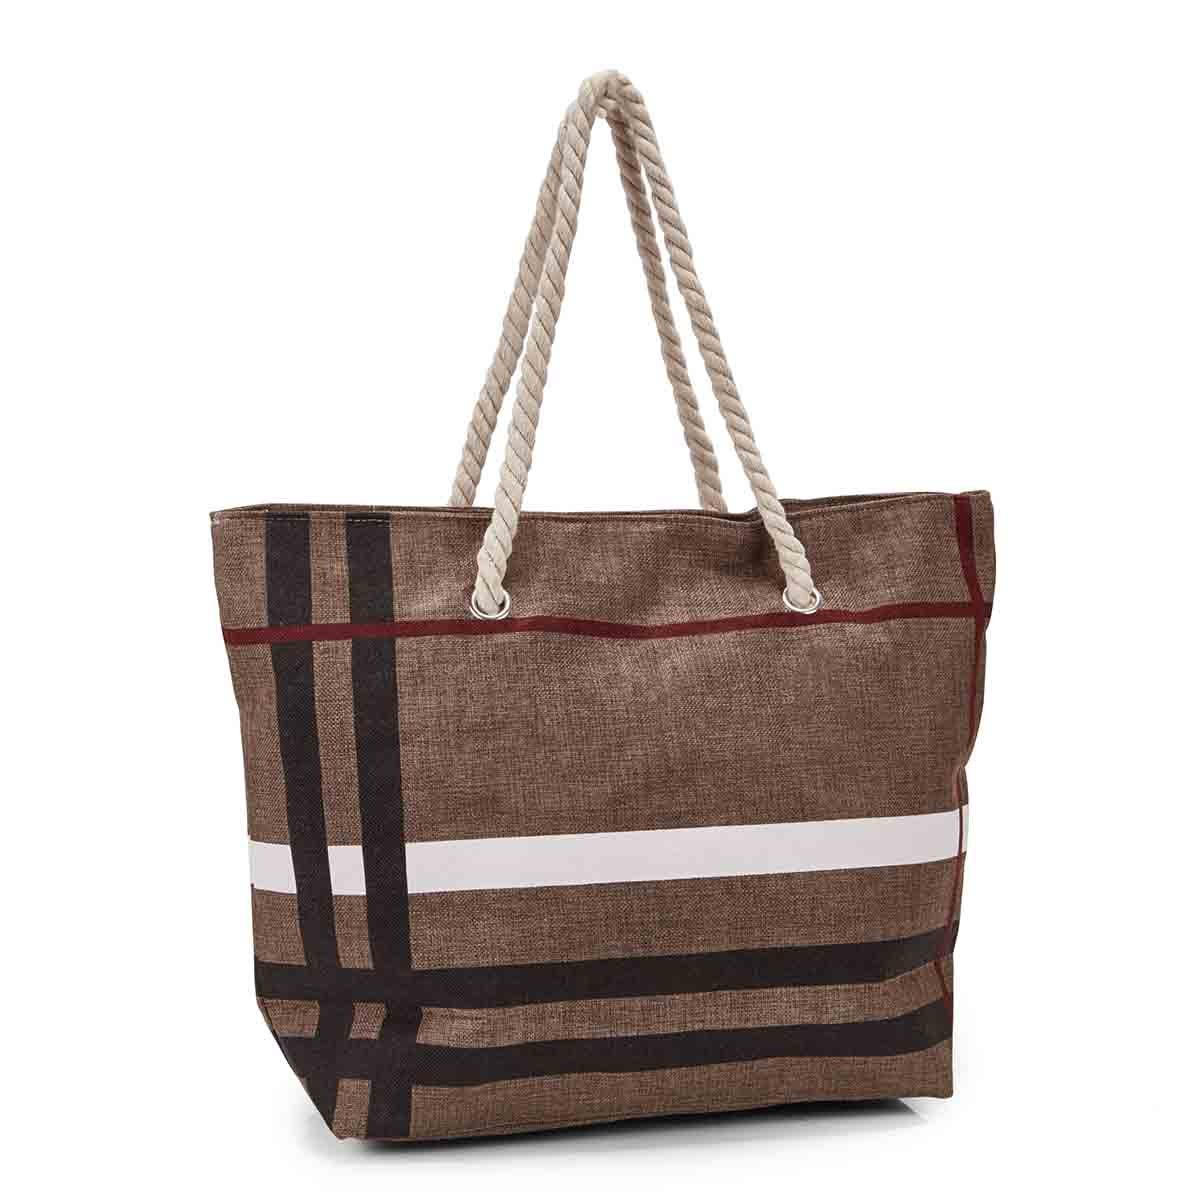 Women's camel canvas tote bag